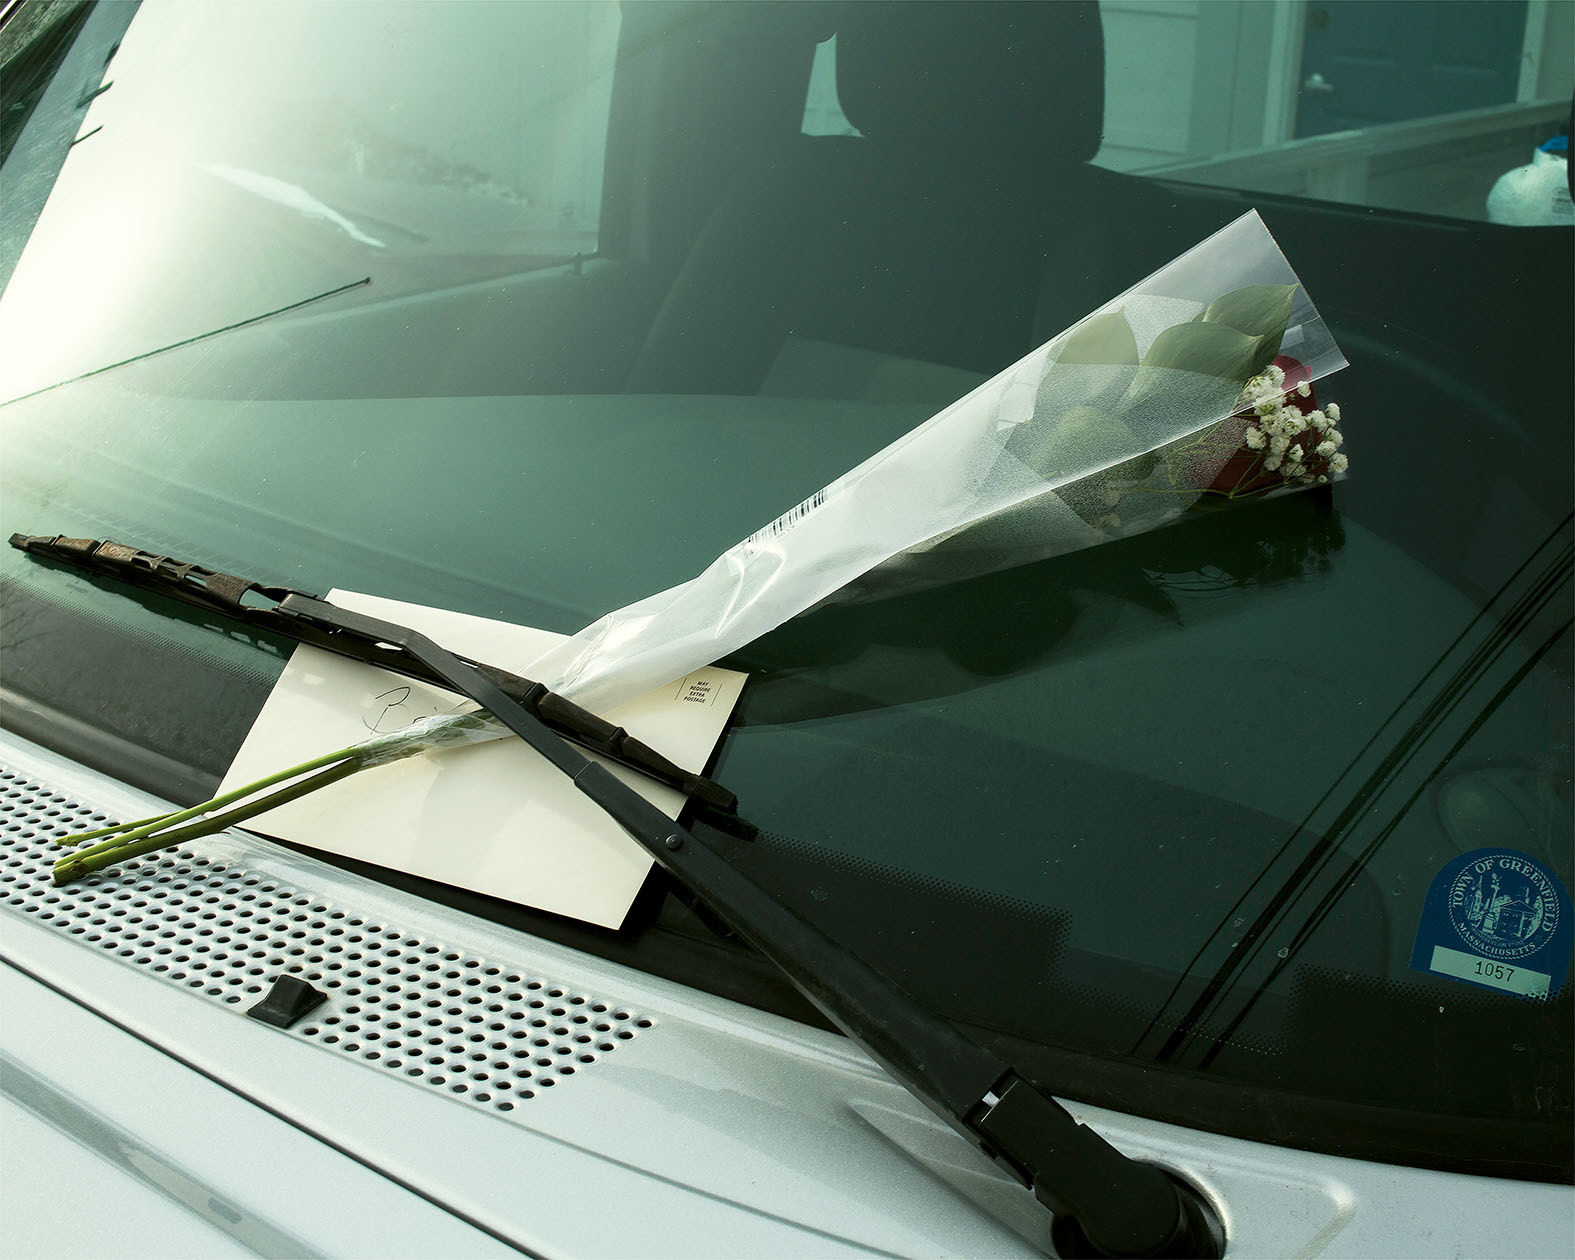 A flower and a card on the windshield of a car